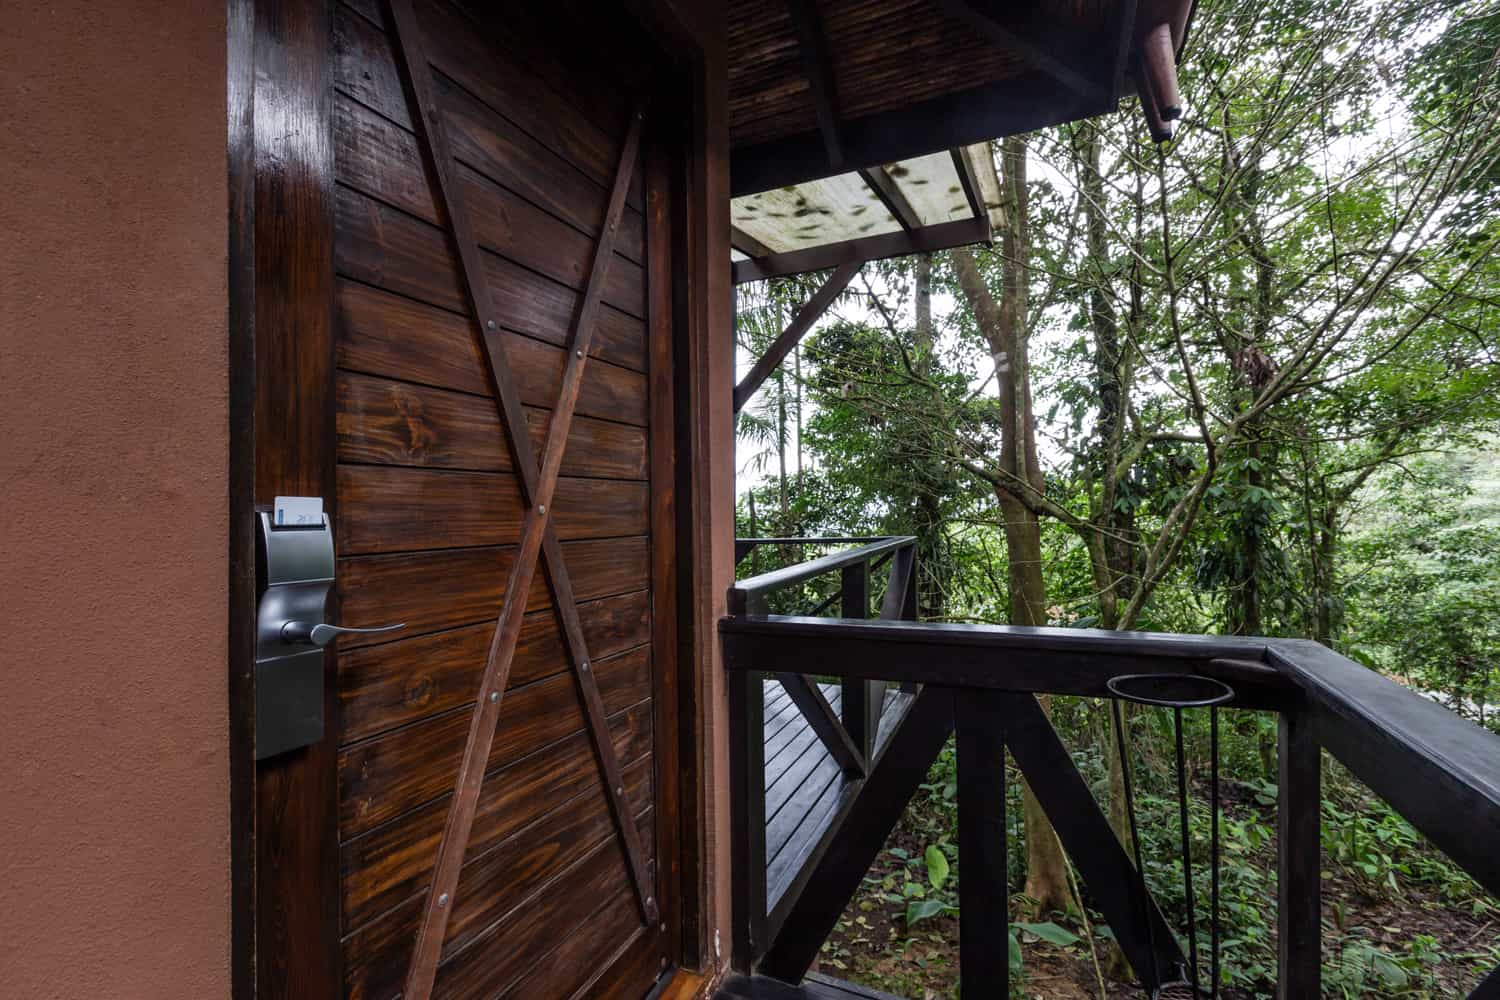 Entrance to guest room secluded in rainforest in Tenorio, Costa Rica.